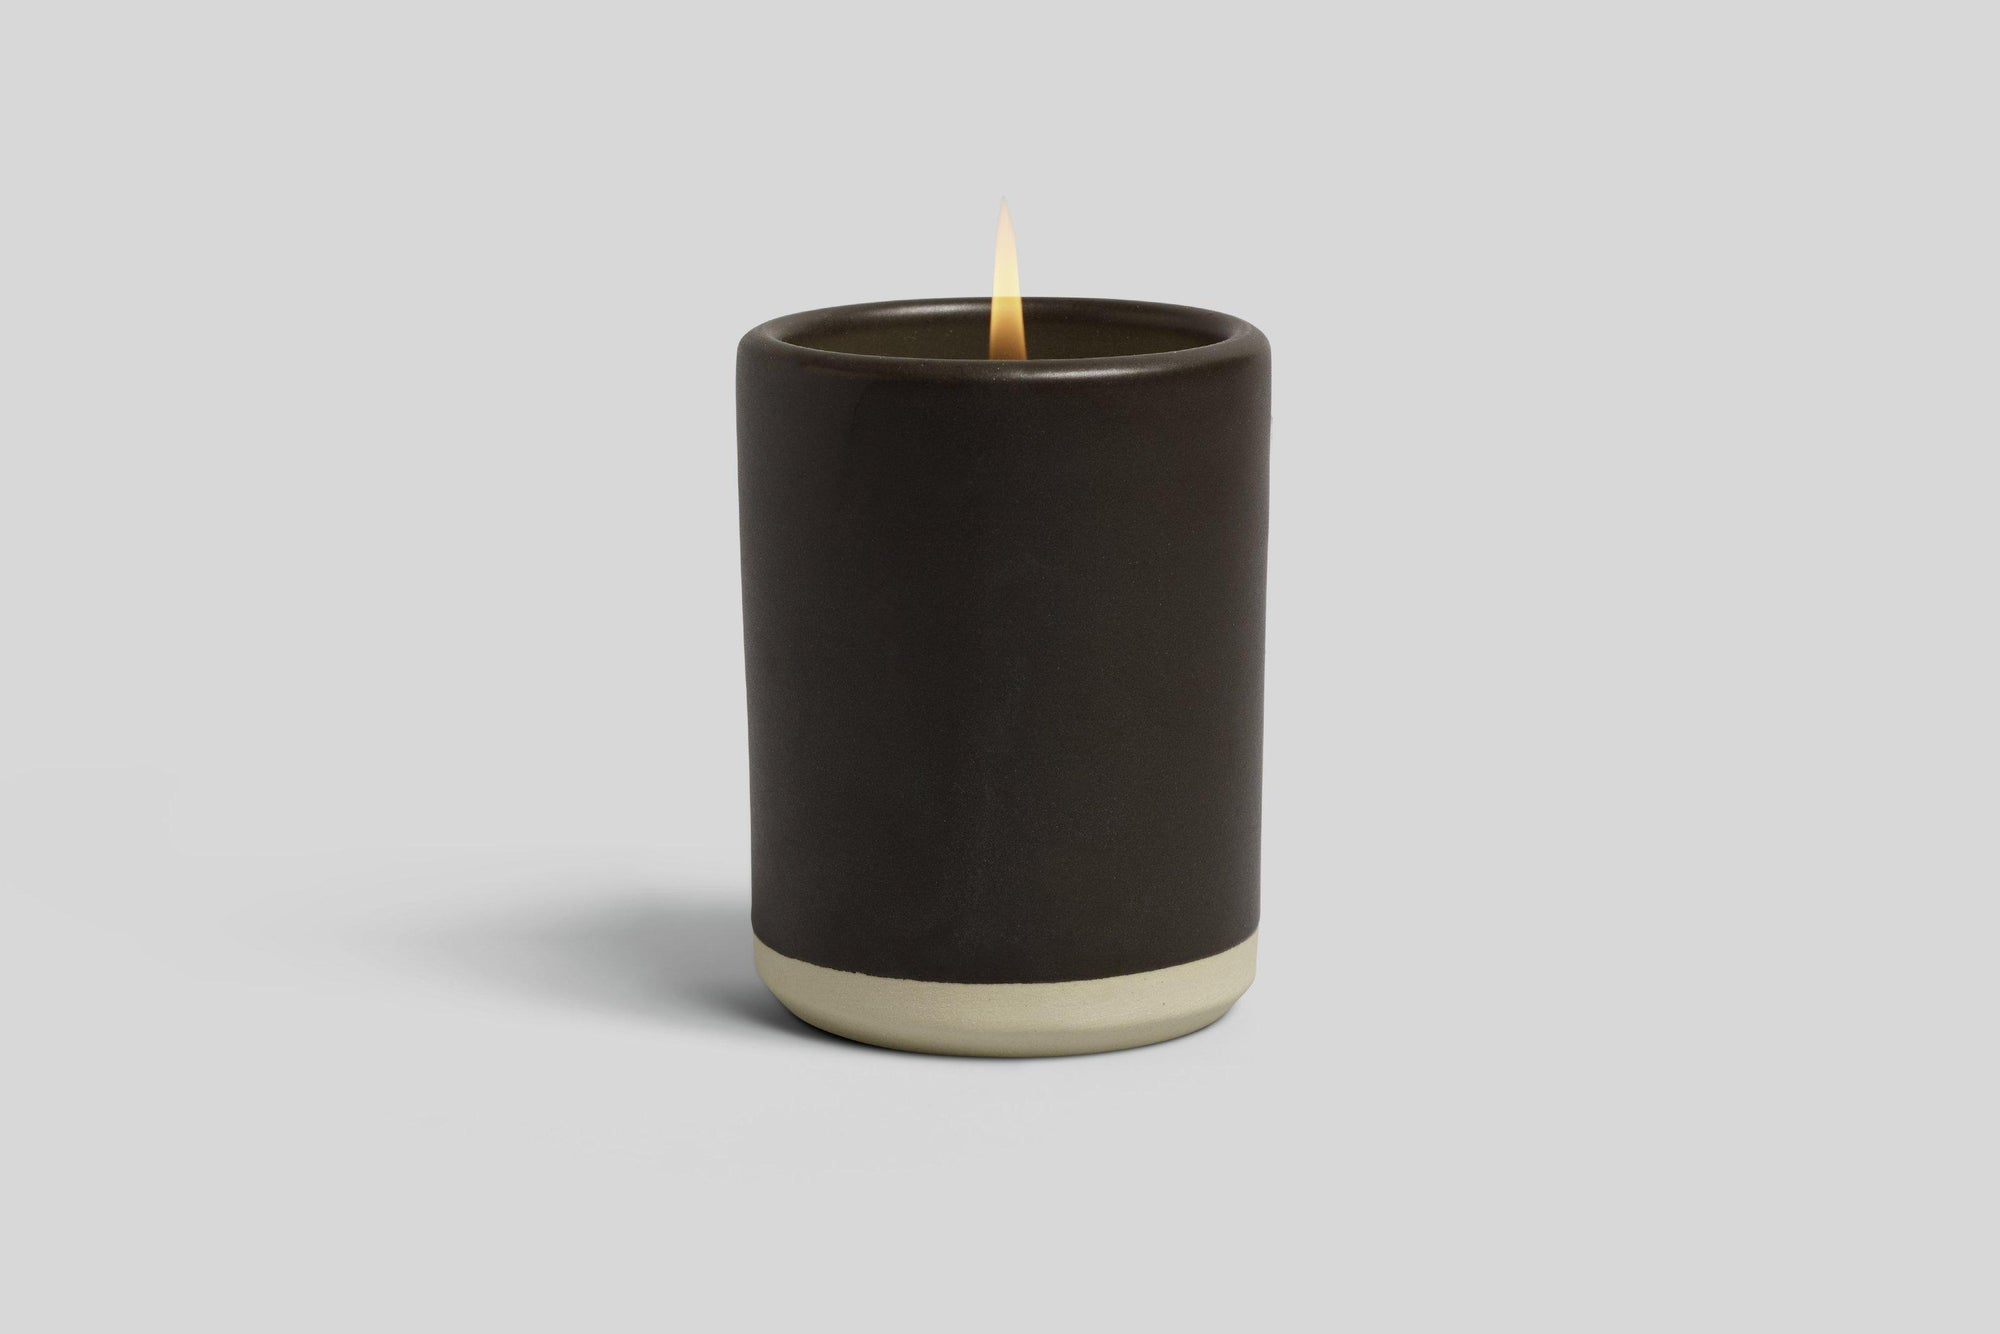 Norden Big Sur 12 oz. Ceramic Candle-Norden-MILWORKS